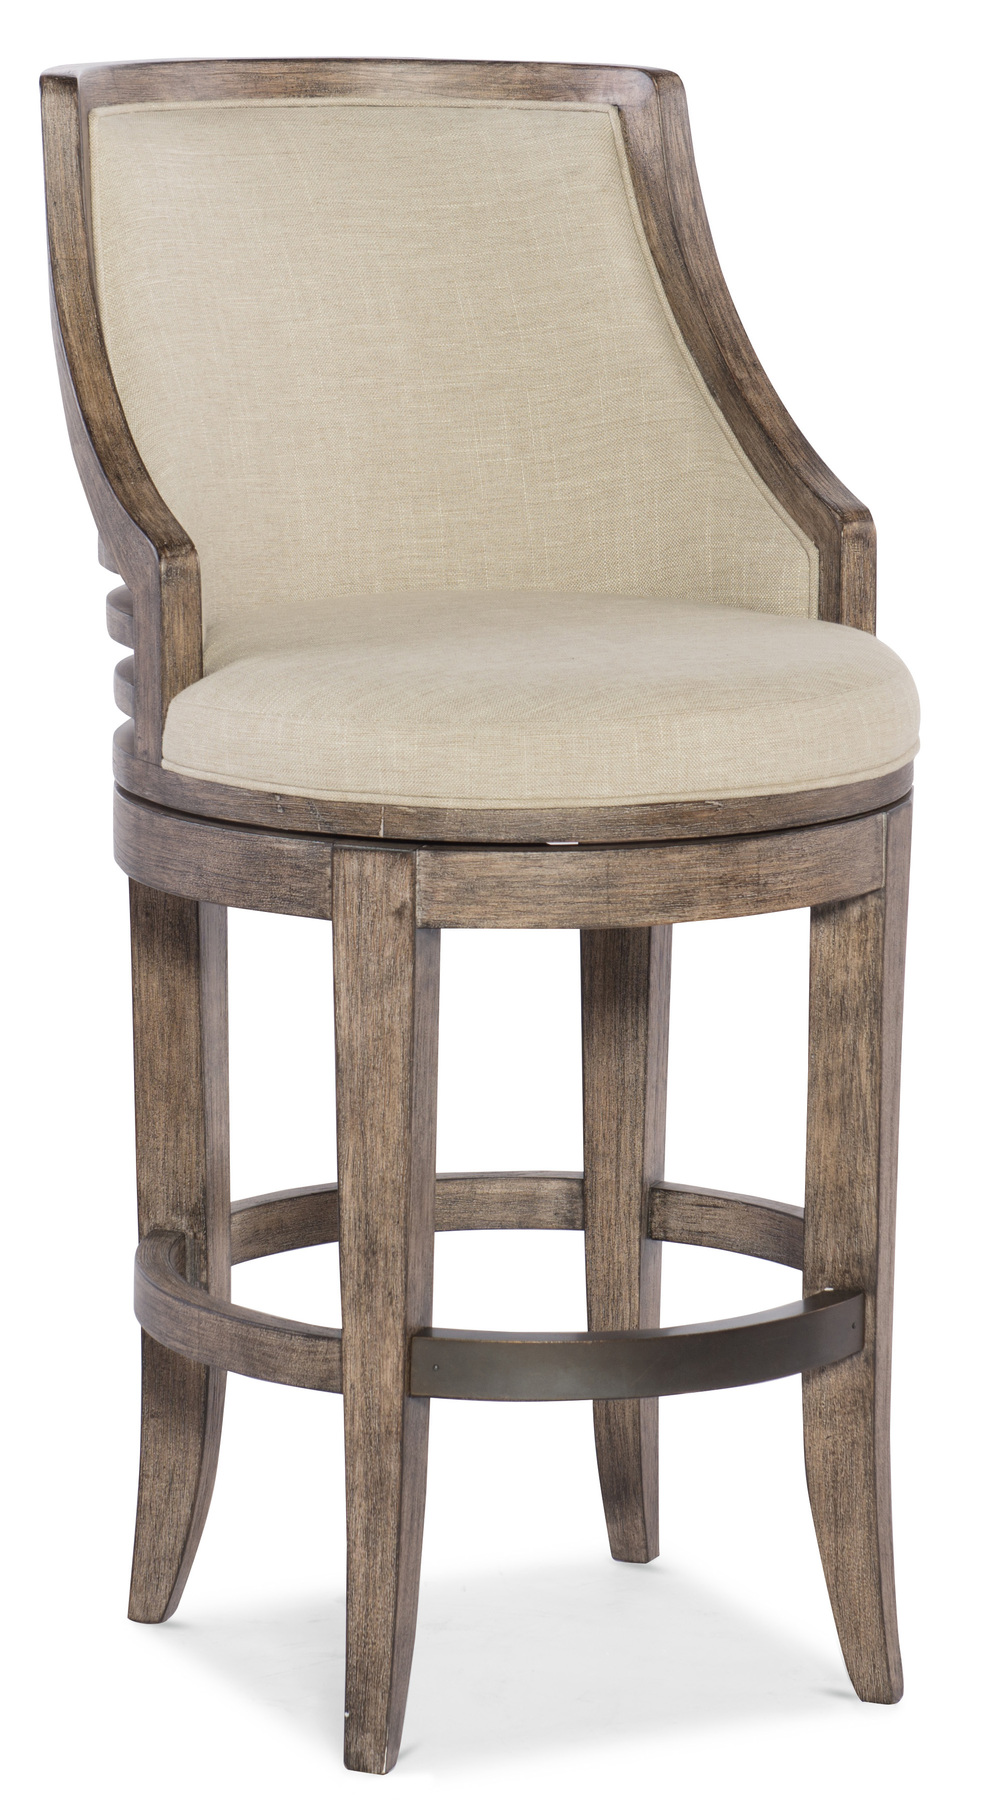 Hooker Furniture - Zinfandel Bar Stool